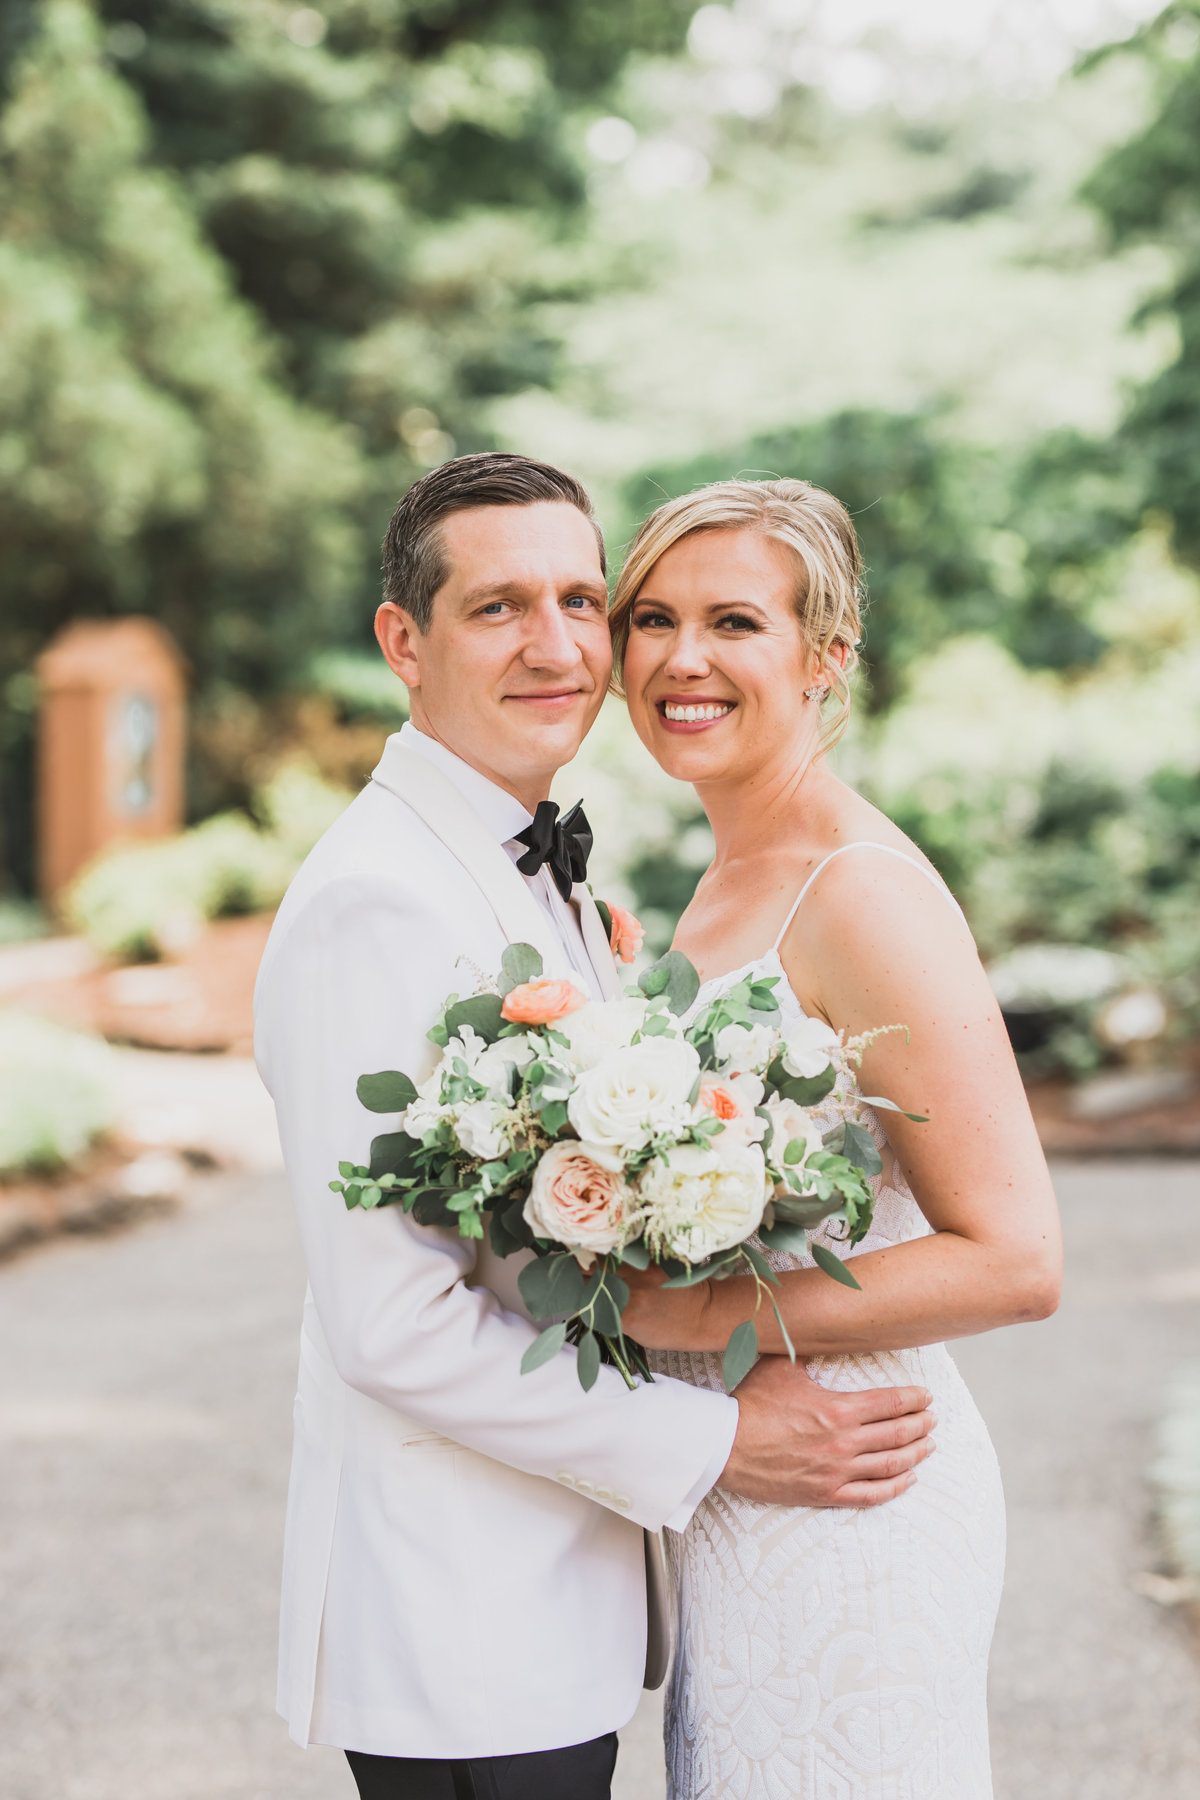 Washington D.C. Wedding Photographer - M Harris Studios-288